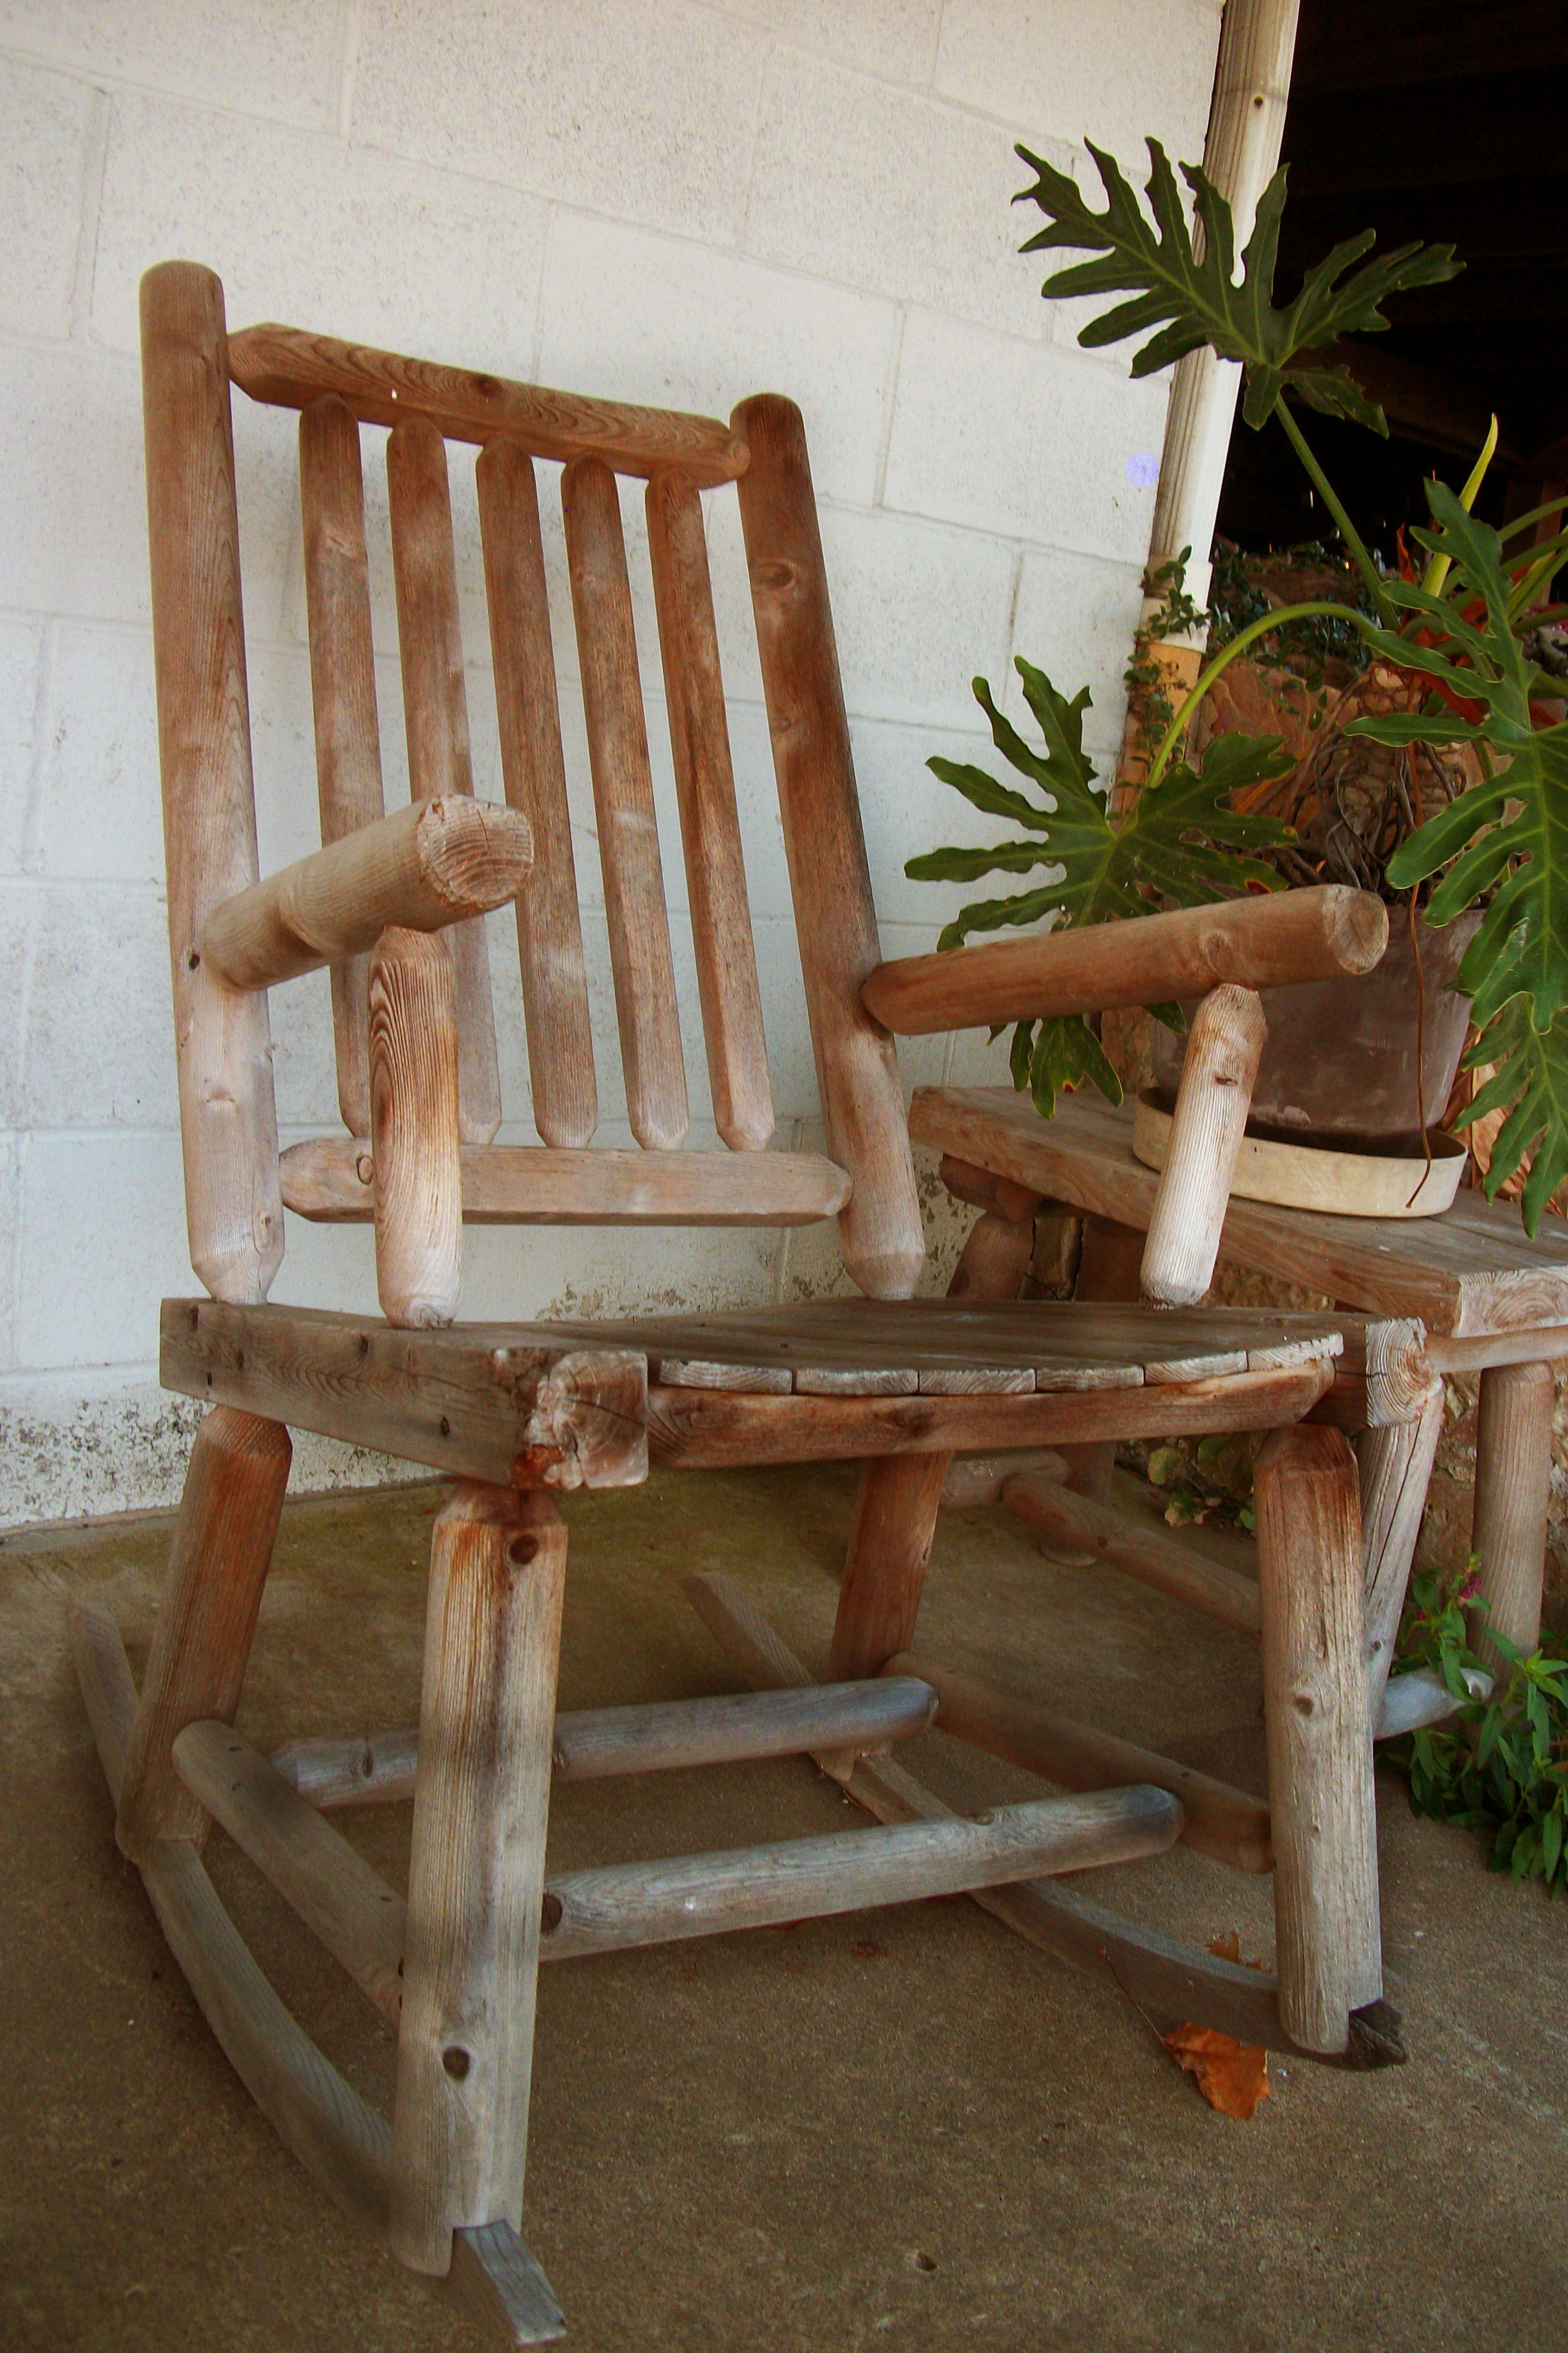 Wonderful image of Rocking chair For the Home Pinterest with #495D21 color and 2666x4000 pixels